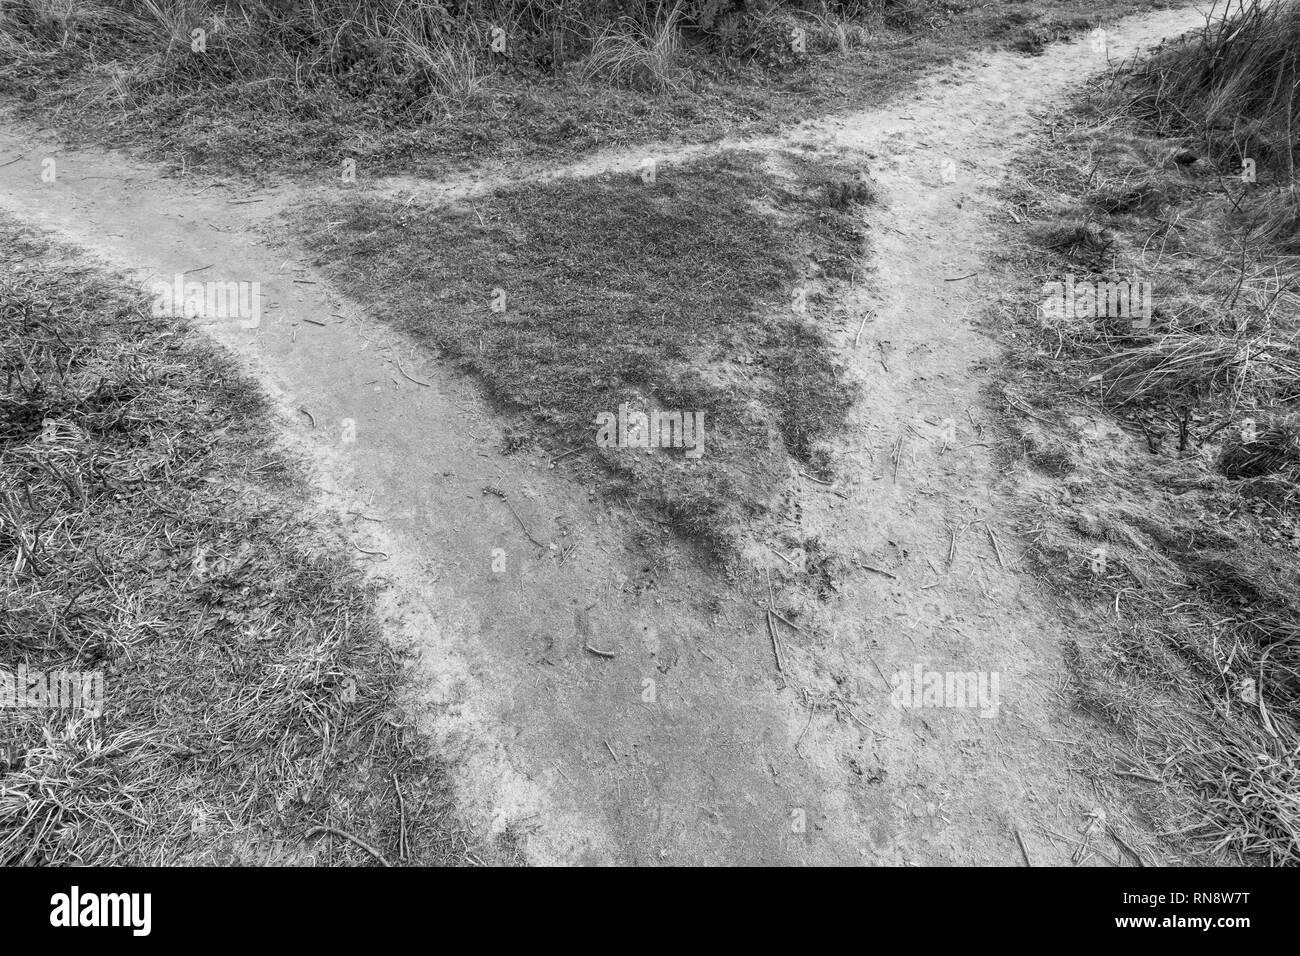 Footpaths crossing - possible metaphor for career choices, life choices, life at a cross roads. - Stock Image